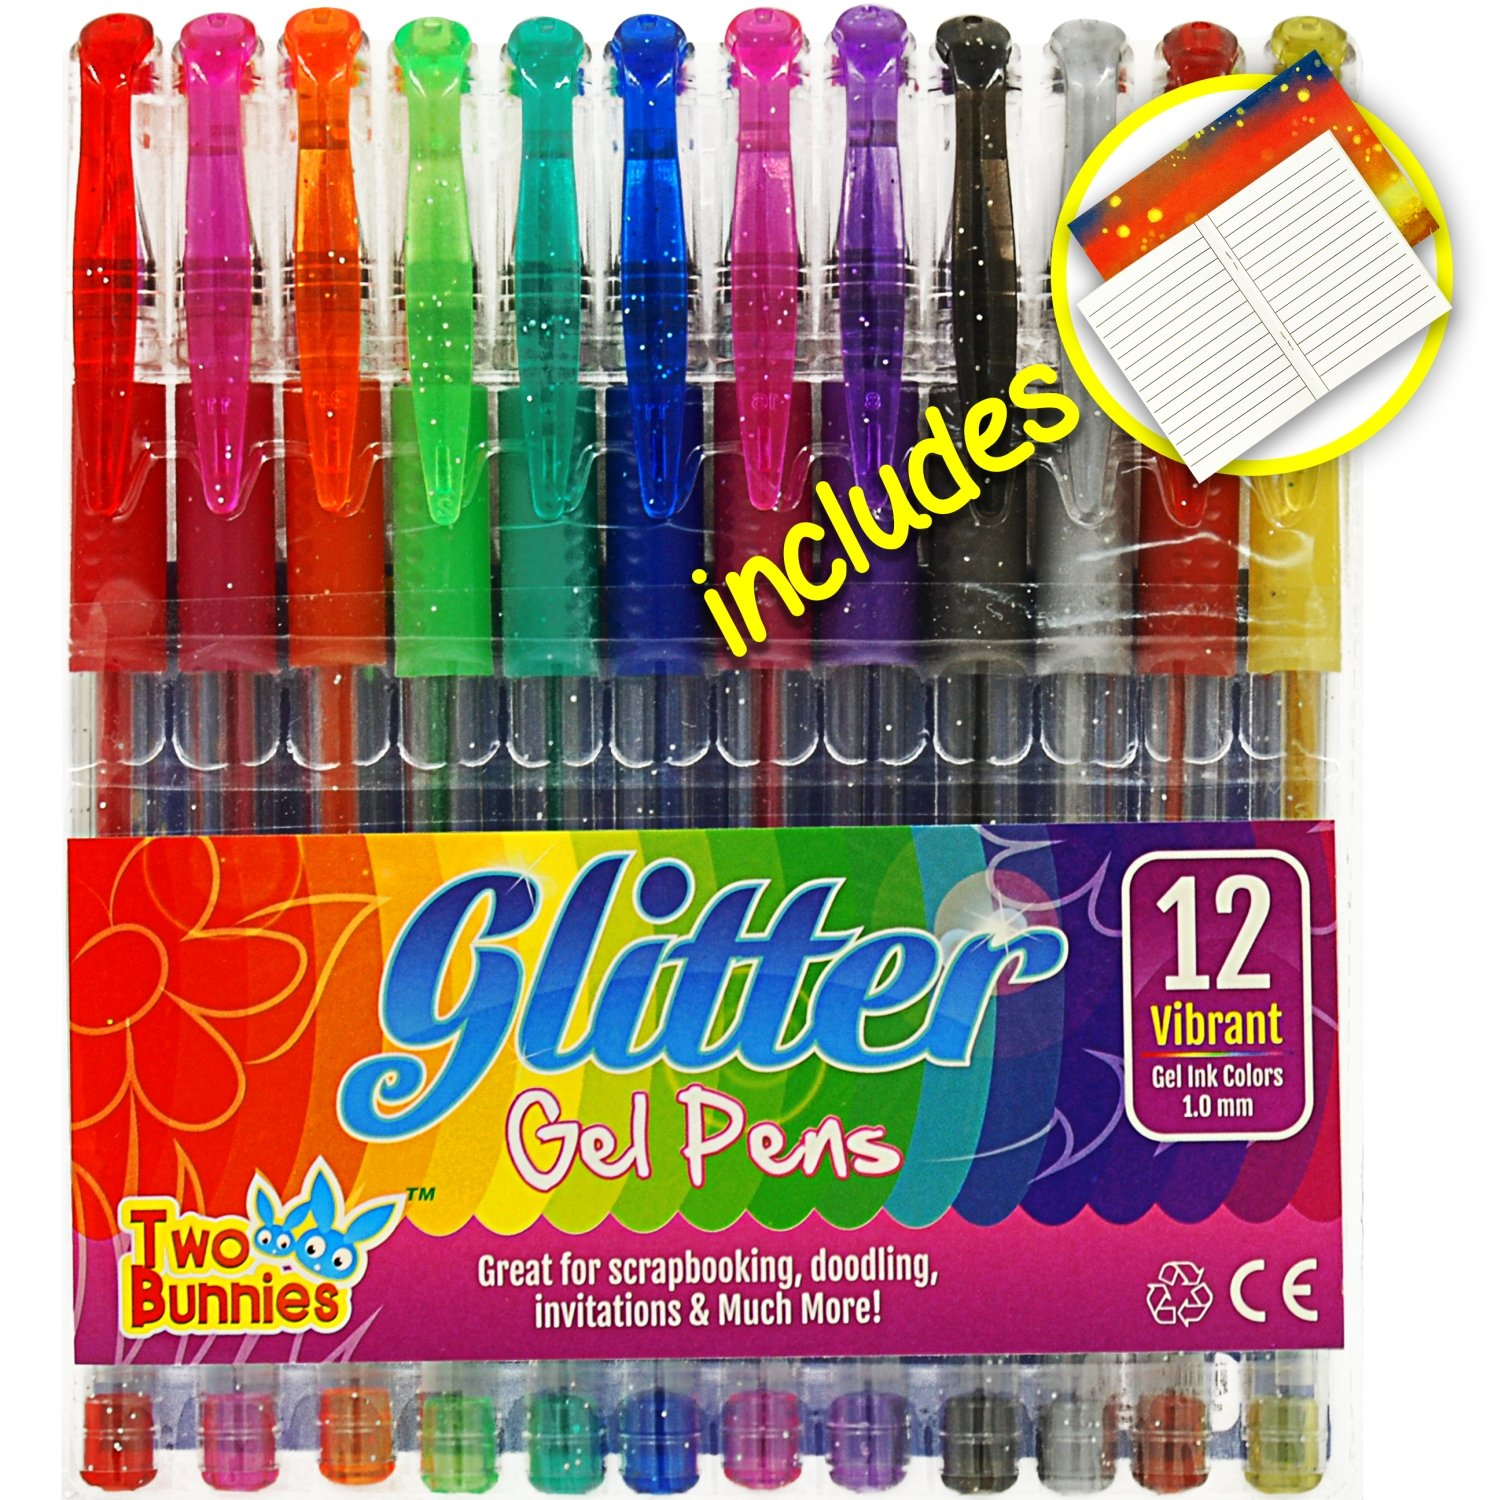 12 Pack - Glitter Gel Pens for Adult Coloring Books, Mandalas, Doodling, Card Making, Incl. Notebook